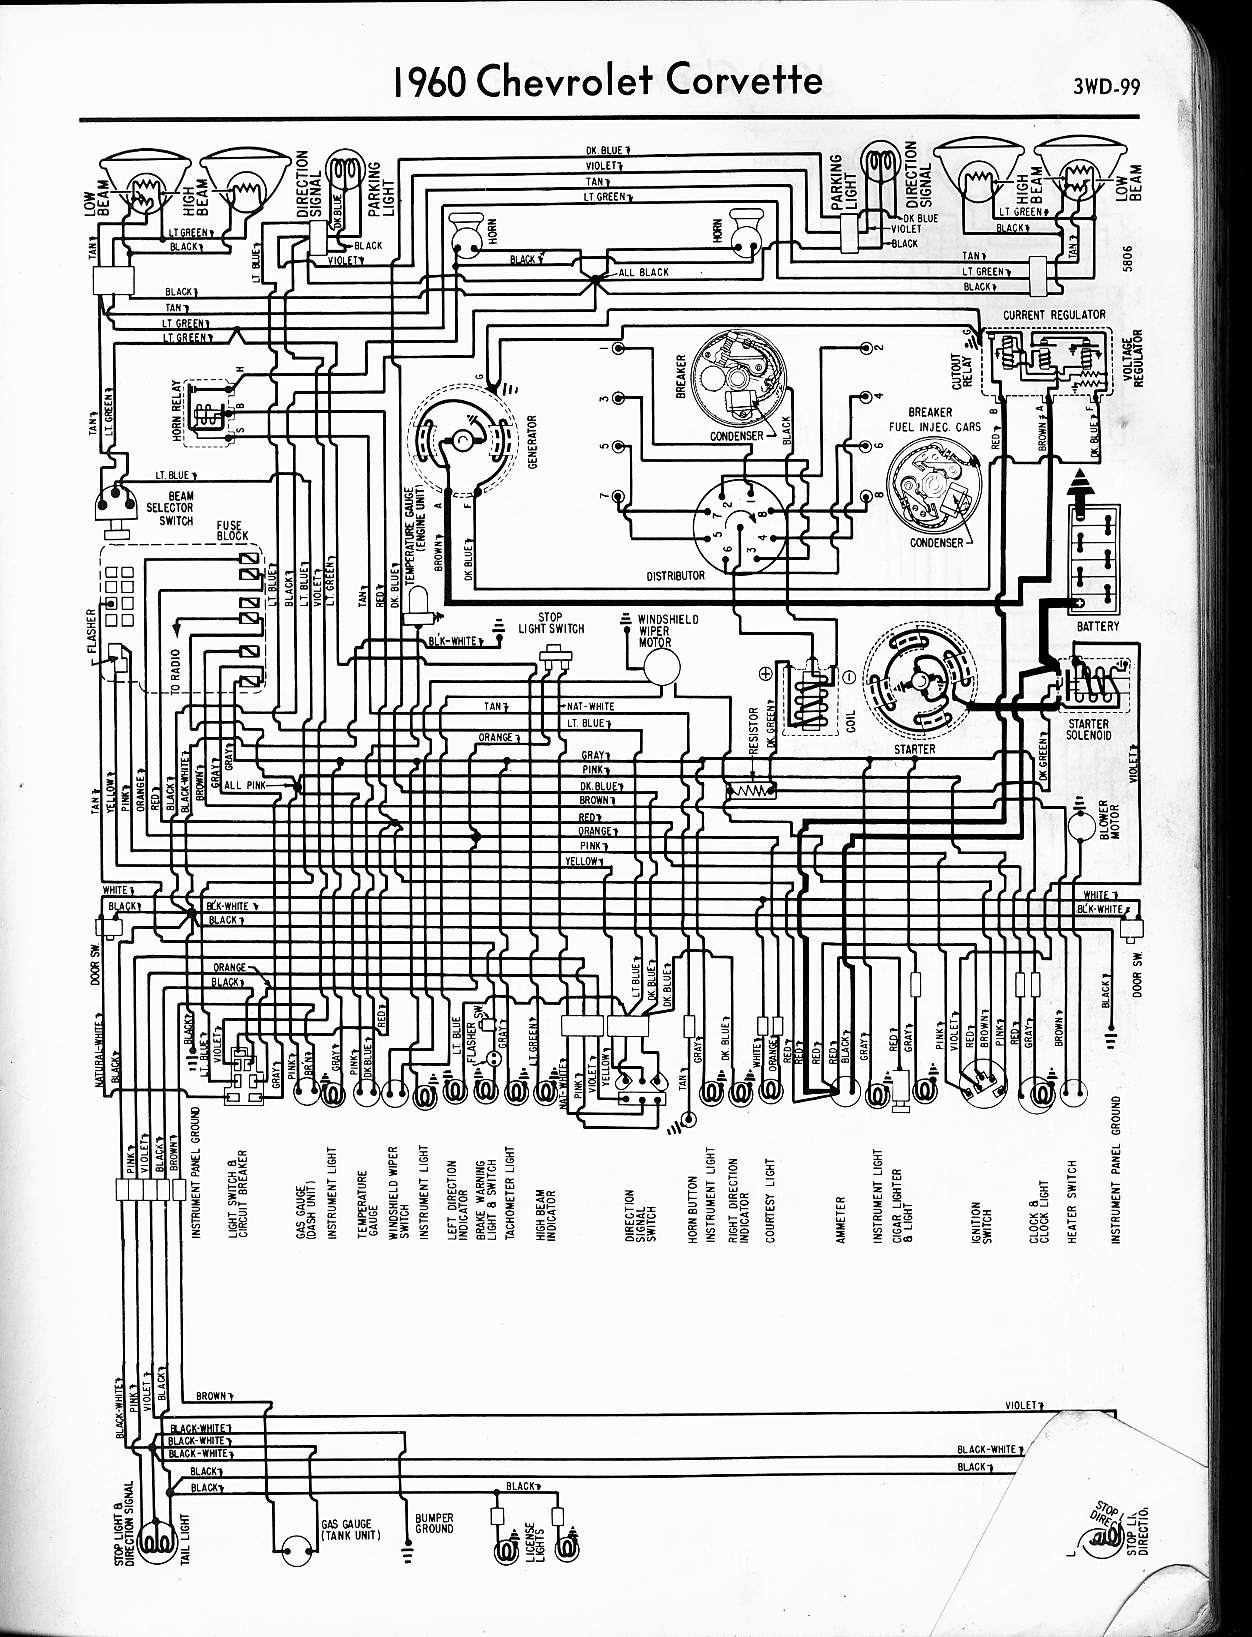 MWireChev60_3WD 099 57 65 chevy wiring diagrams 1960 corvette wiring diagram at panicattacktreatment.co